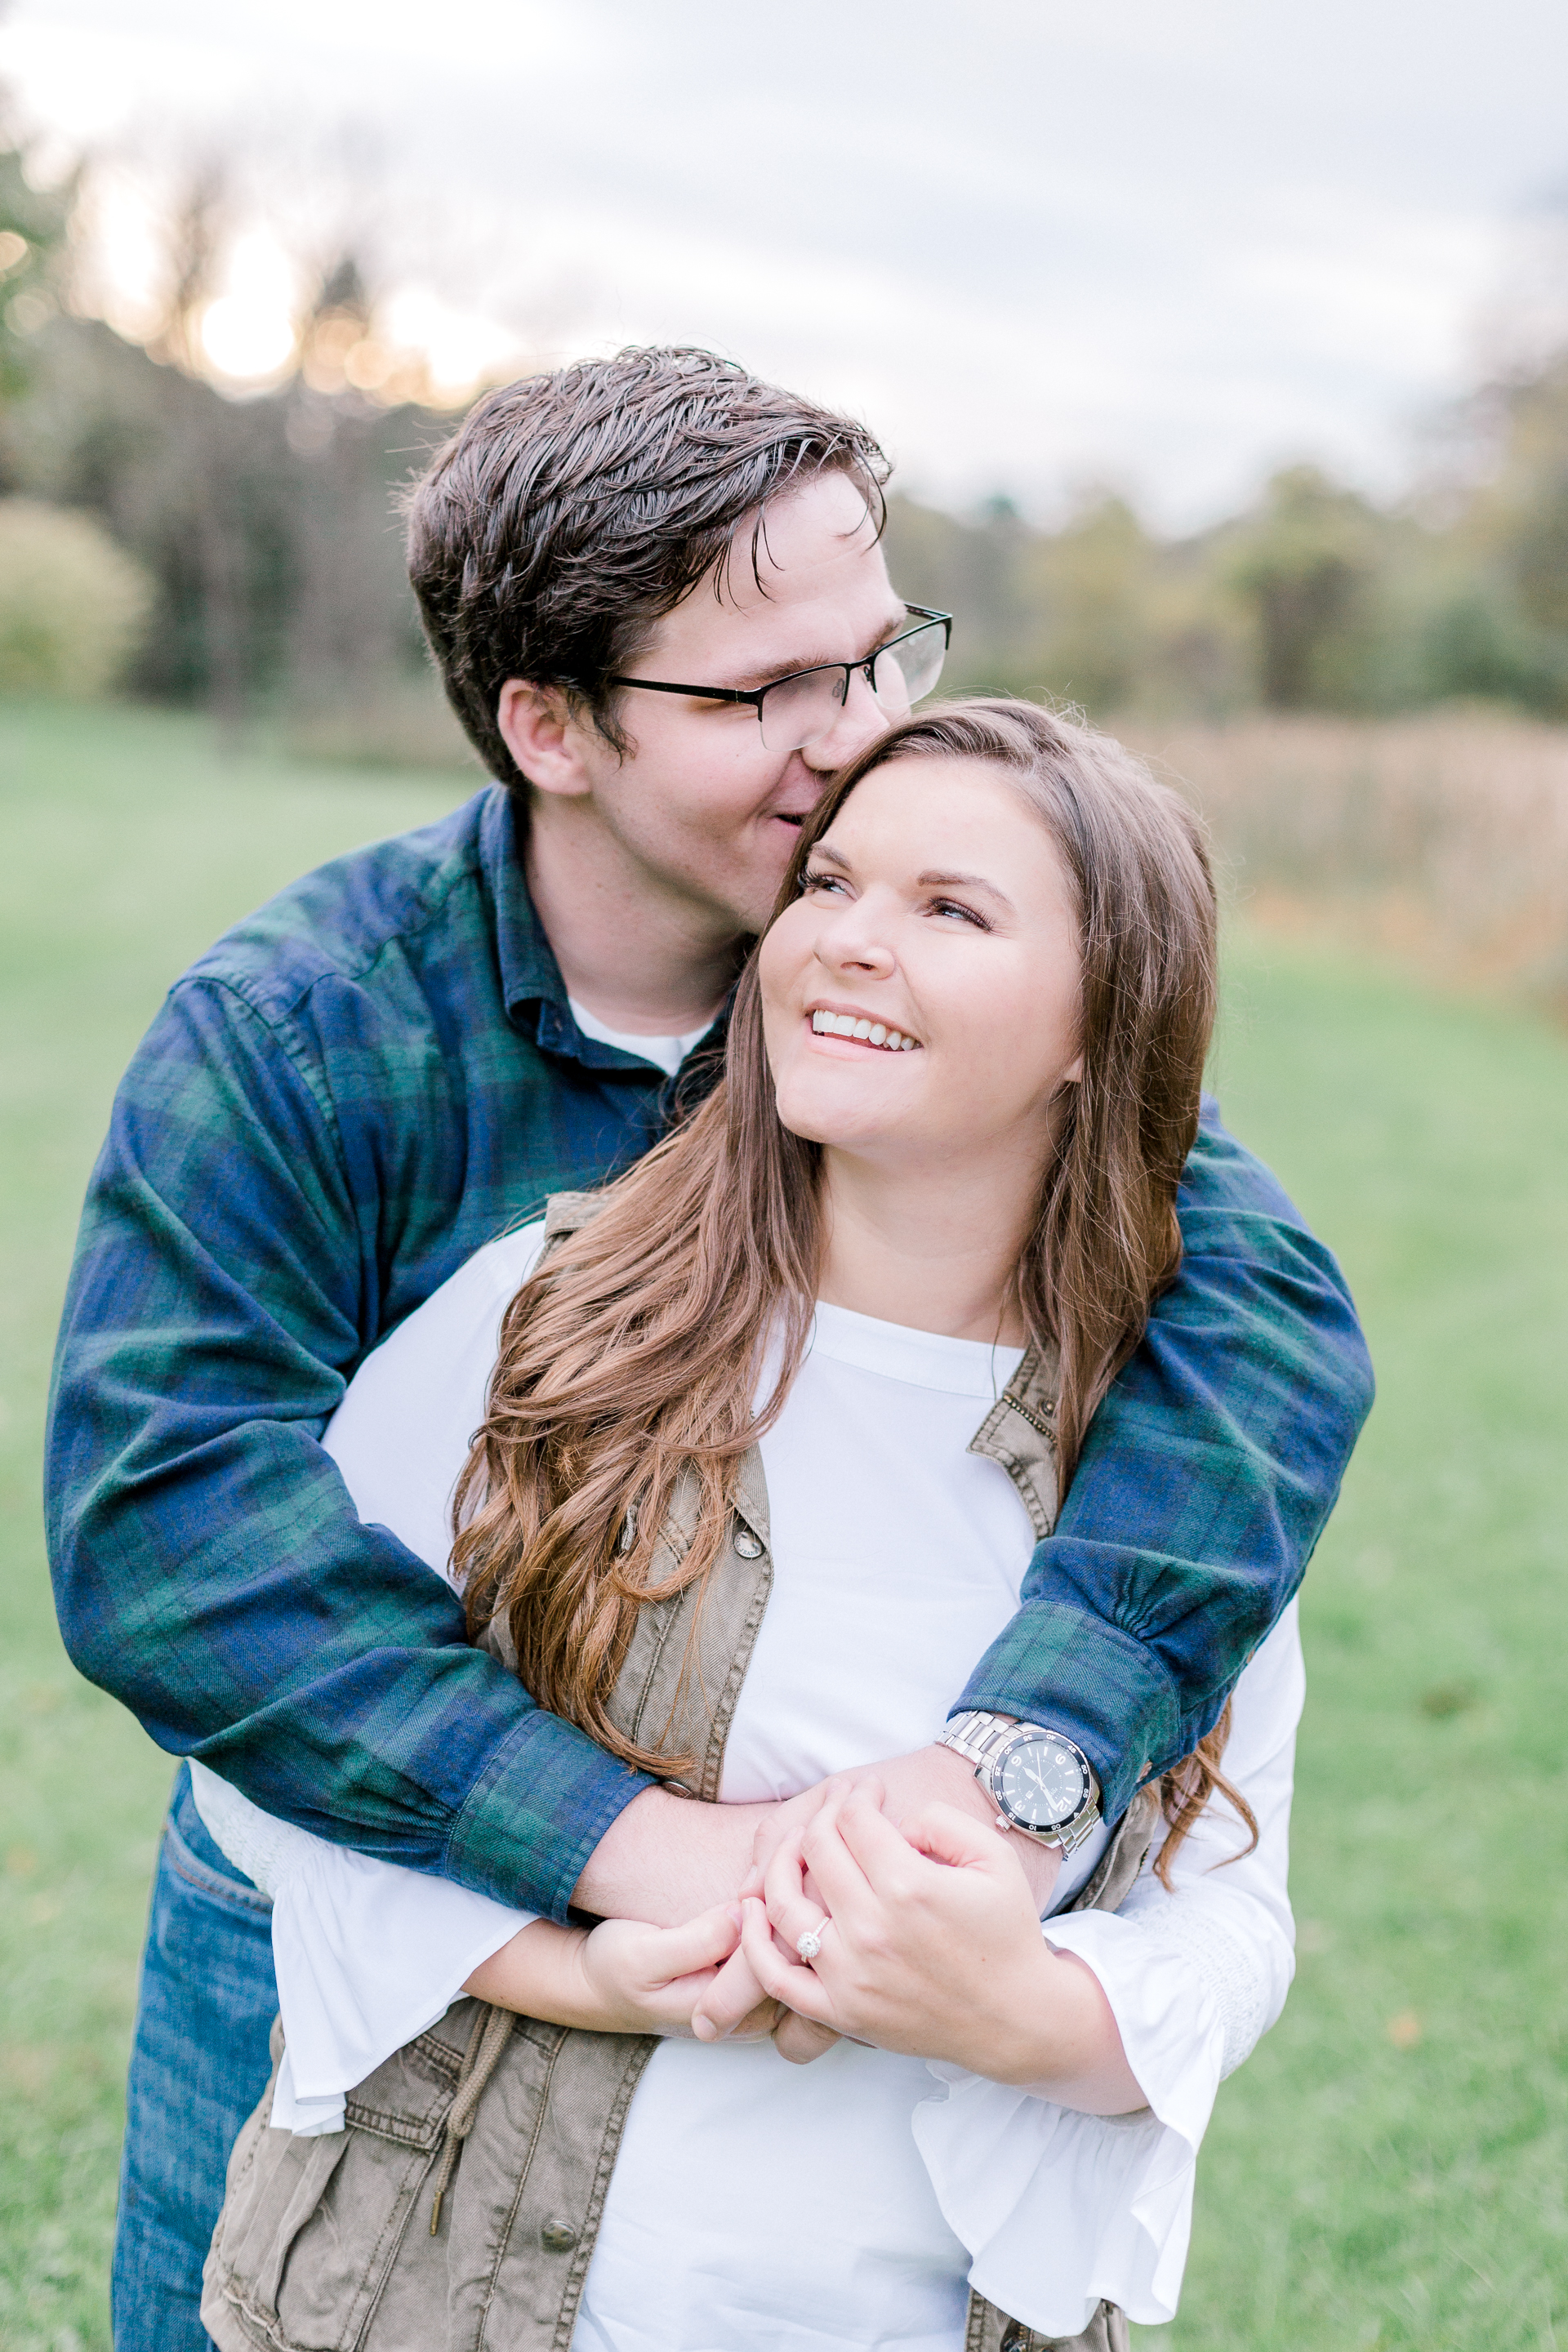 Lehigh valley Fish hatchery fall Engagement Session wedding and lifestyle photographer Lytle Photo Co (59 of 66).jpg